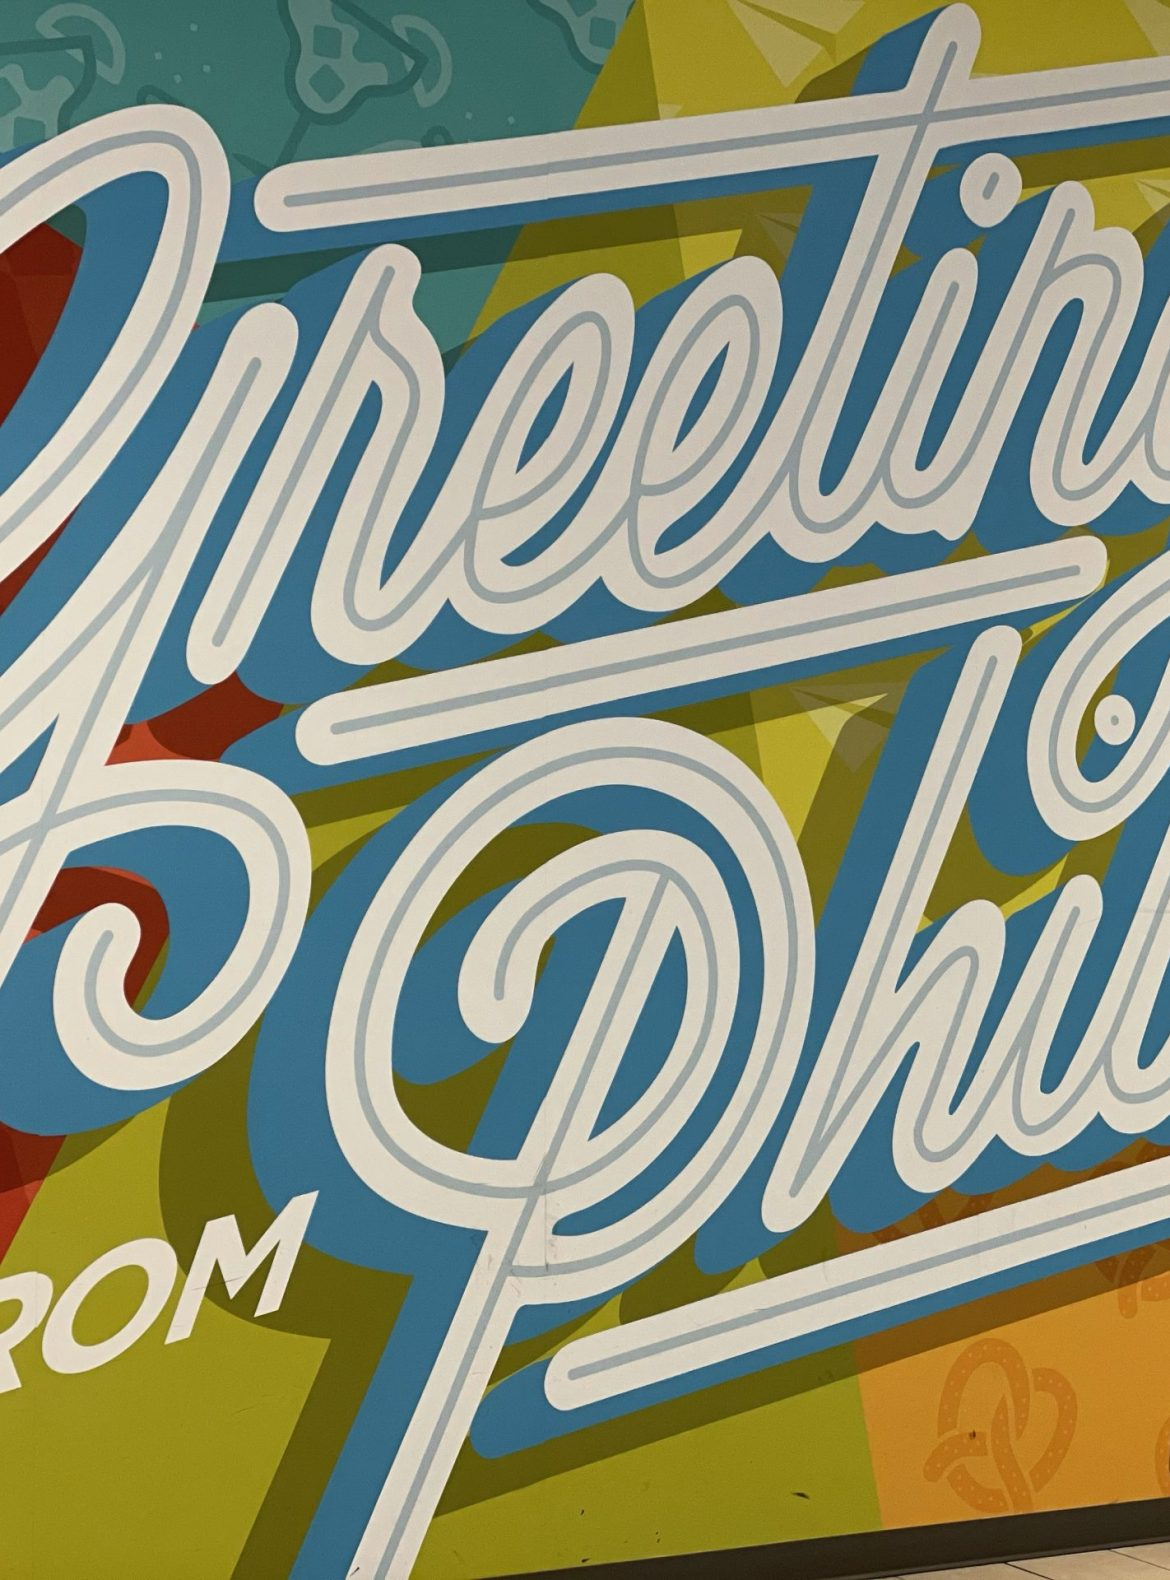 One Day in Philadelphia: City Guide for Families (Staycation or Visitors) 2